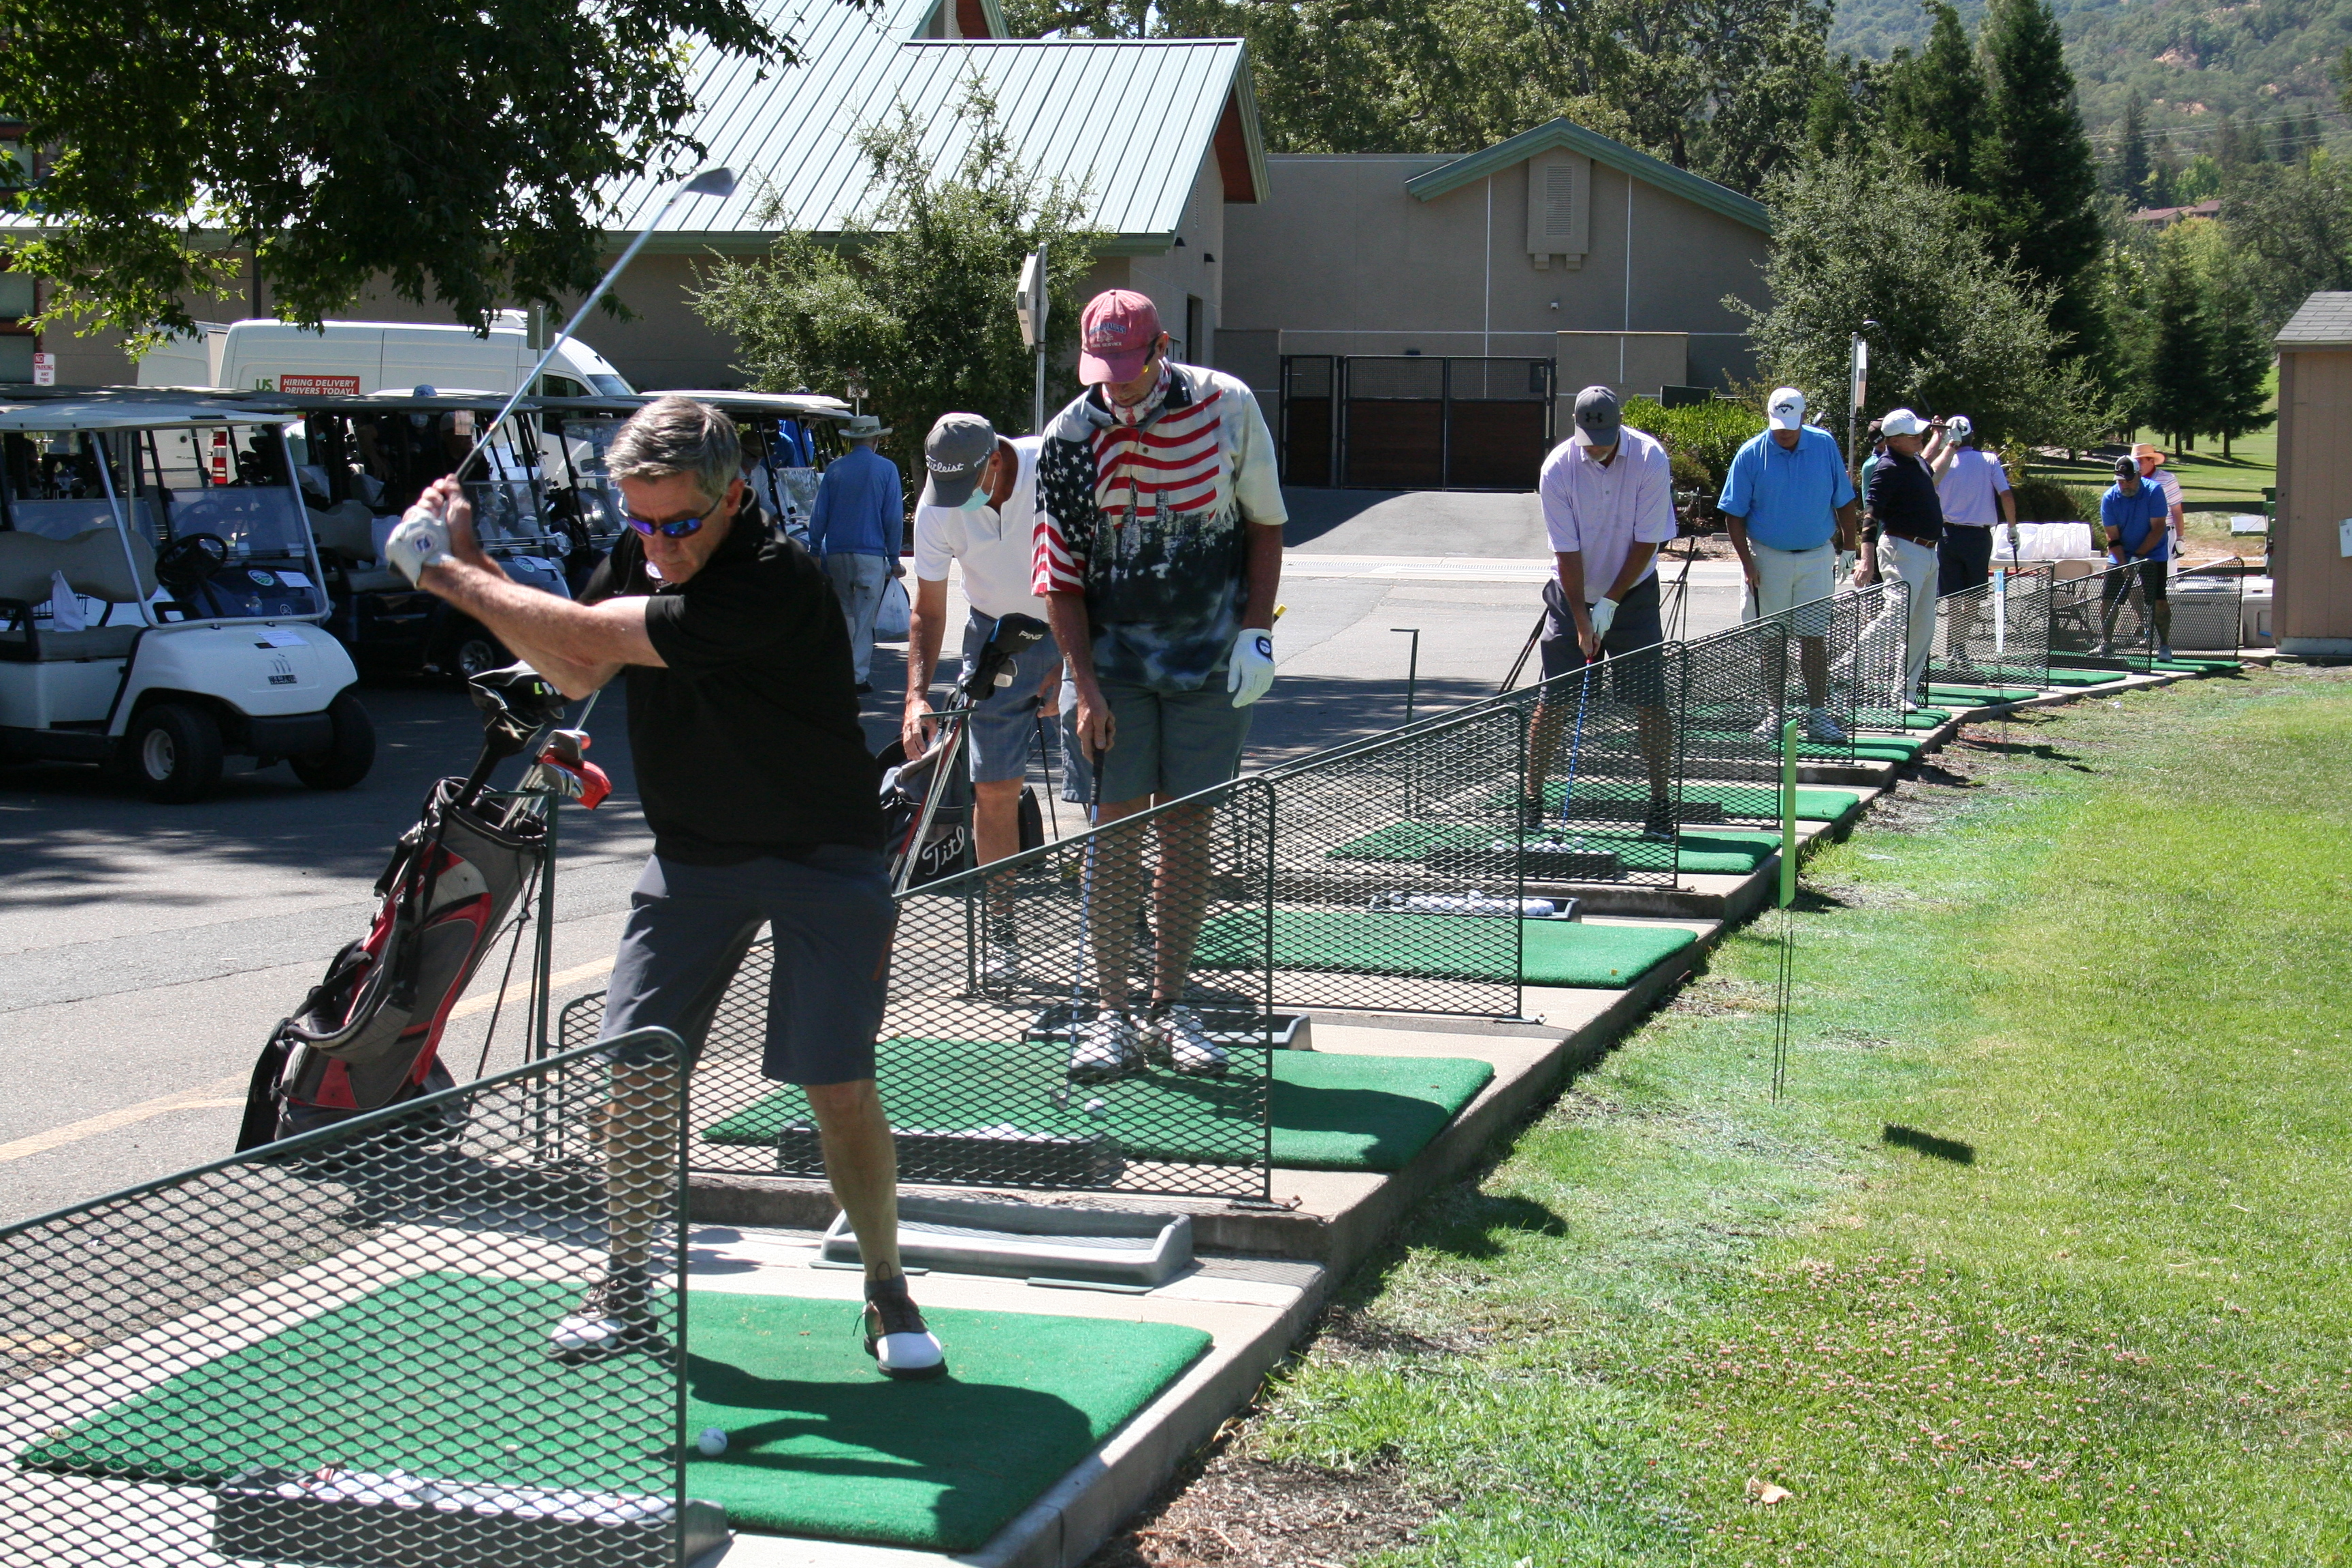 Bay Area Rescue Mission - 26th Annual New Life Golf Tournament gallery image #11